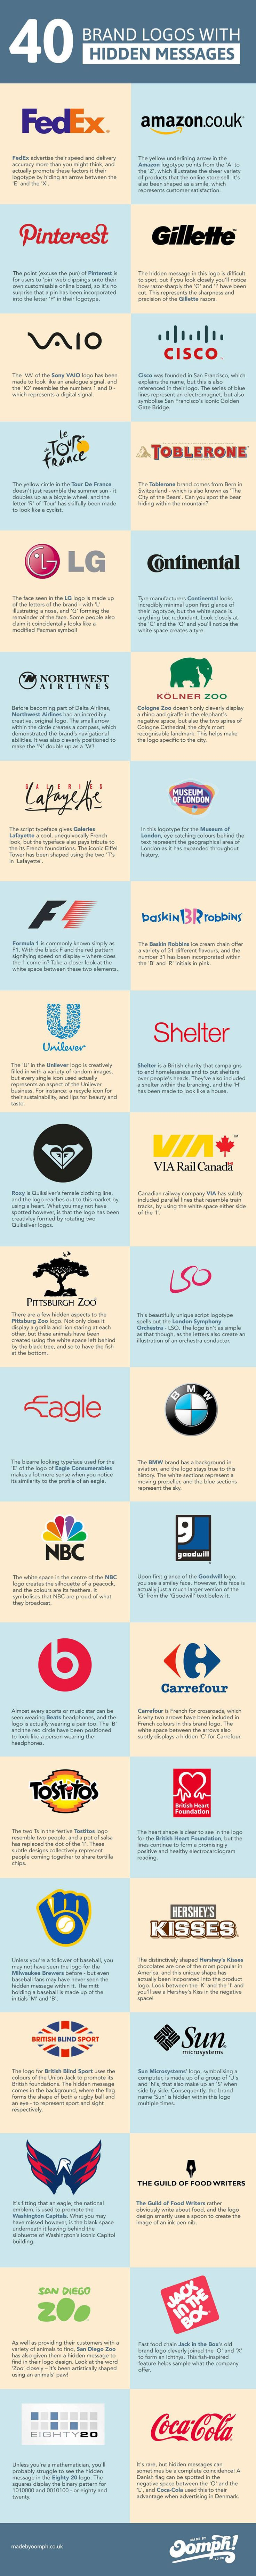 40 brand logos with hidden messages #infographic